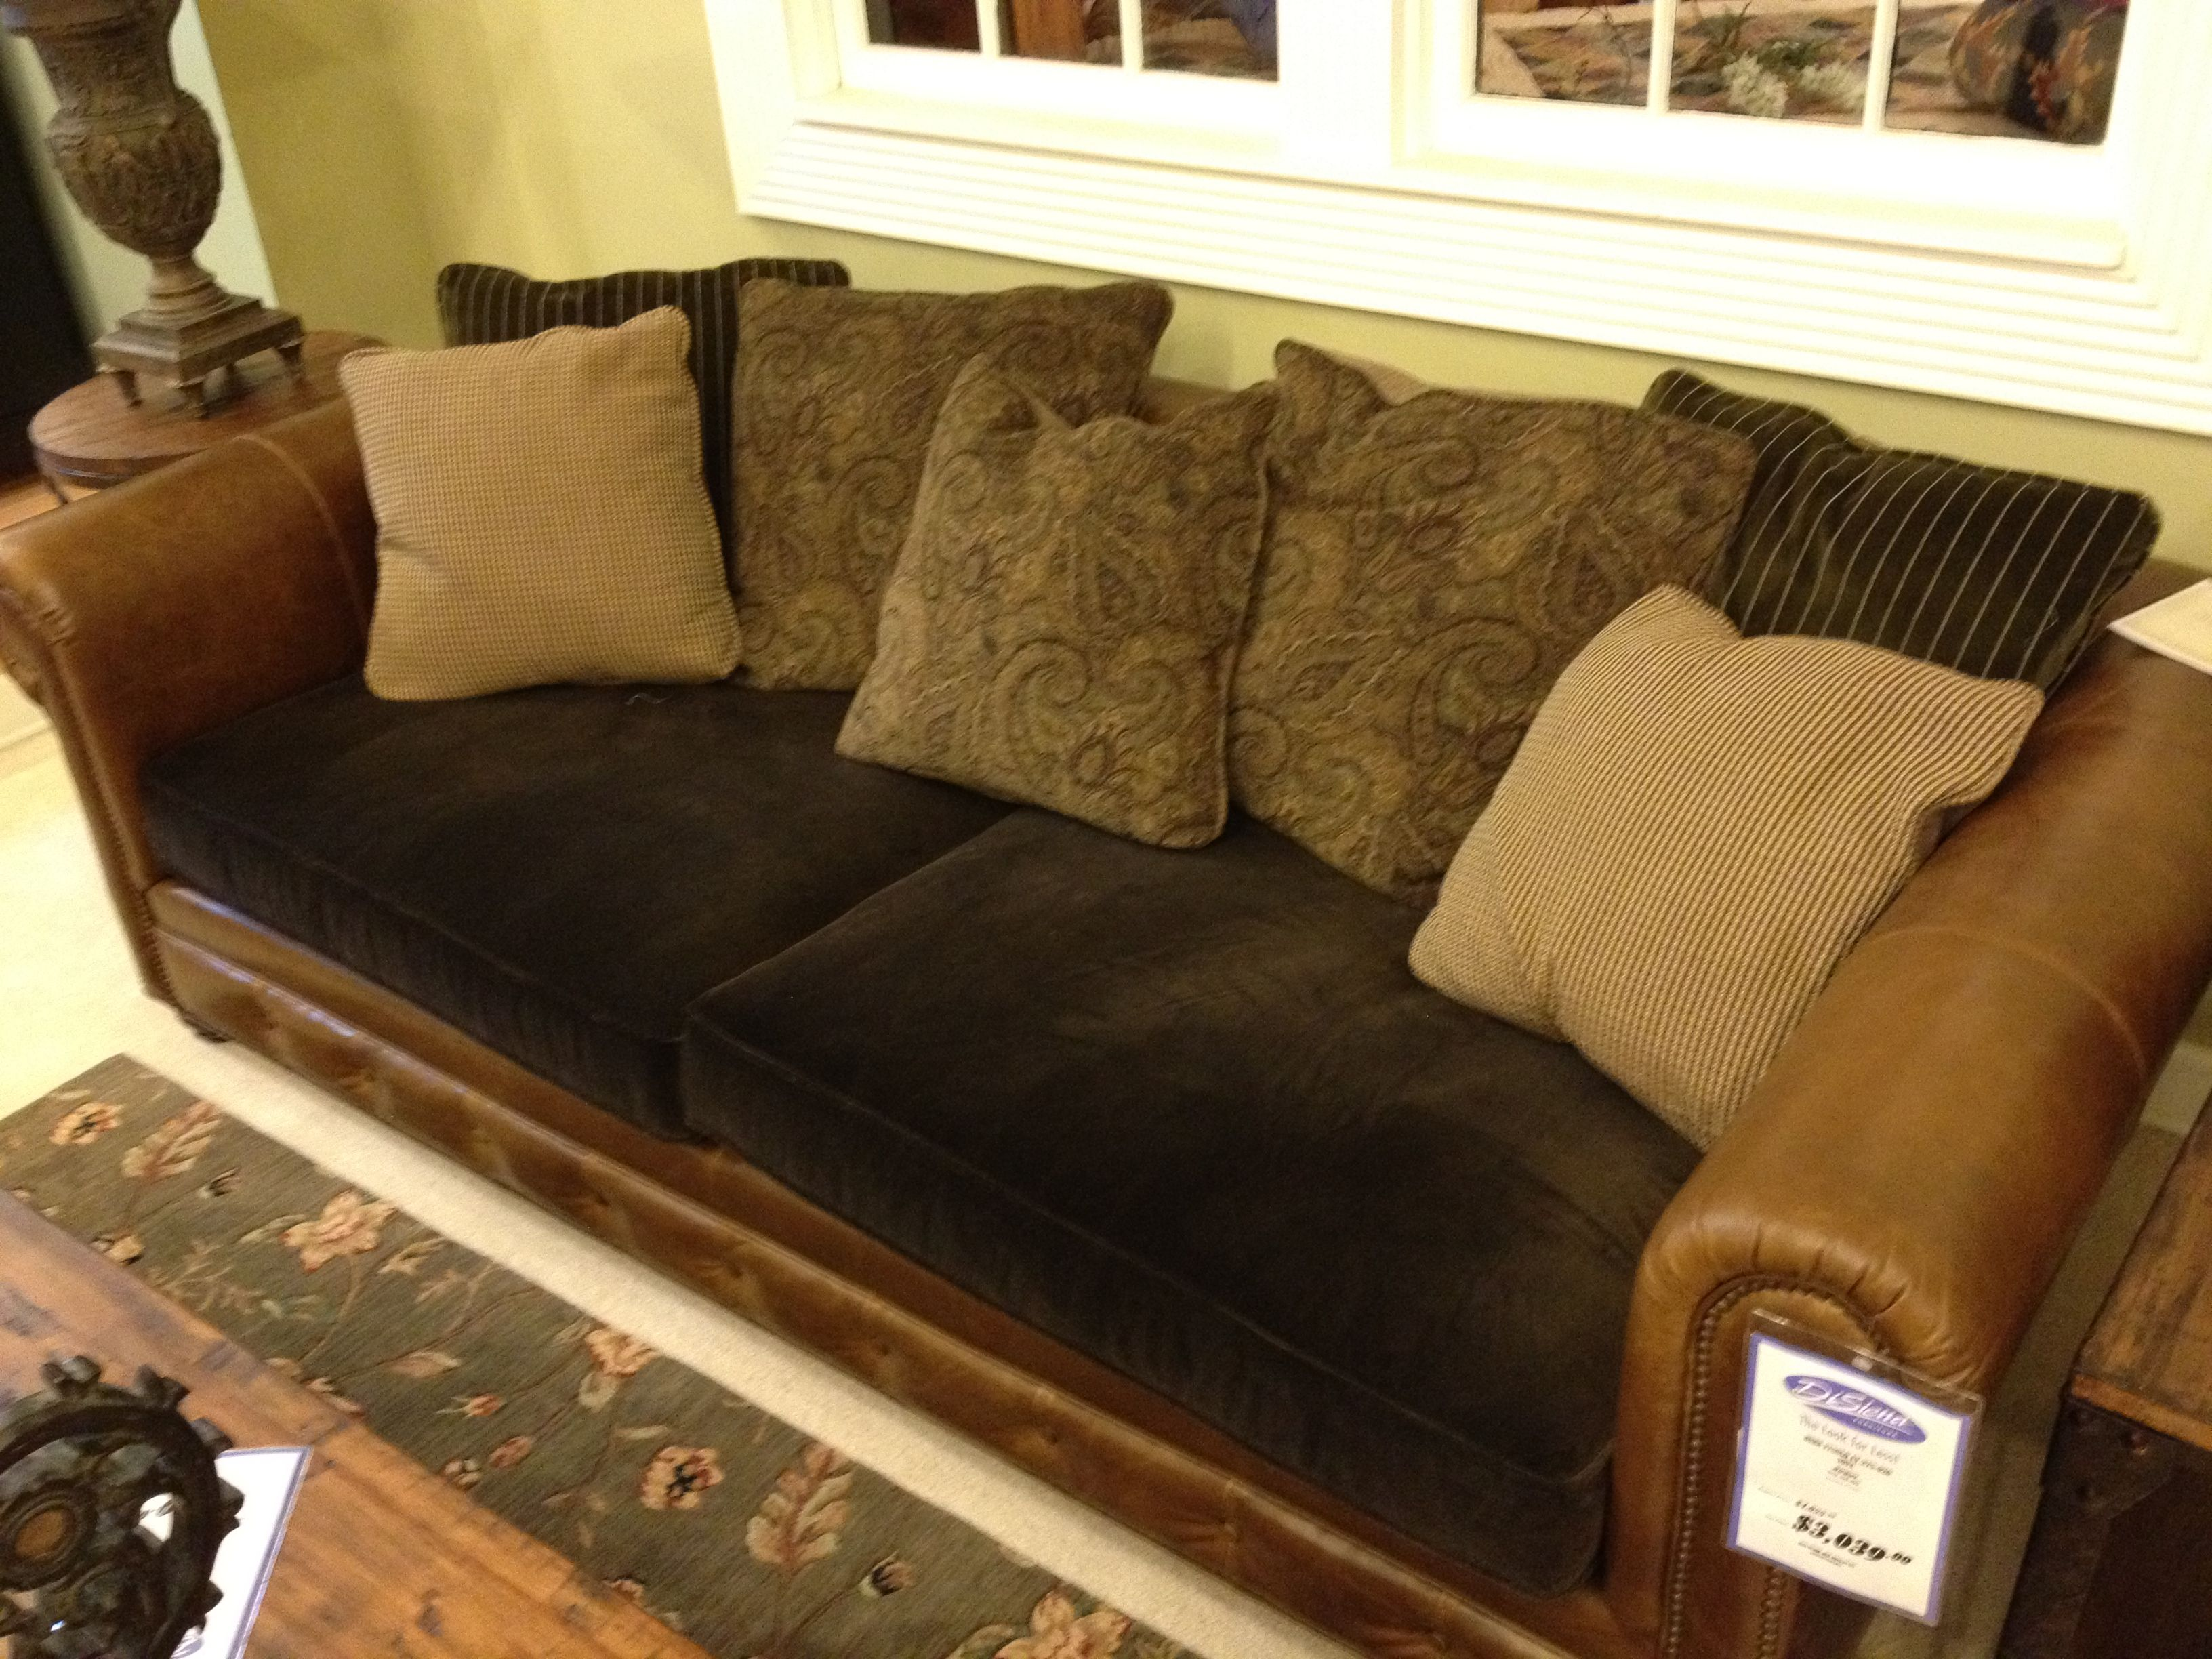 Couch Makeover •Recovered couch cushions• Vintage leather couch